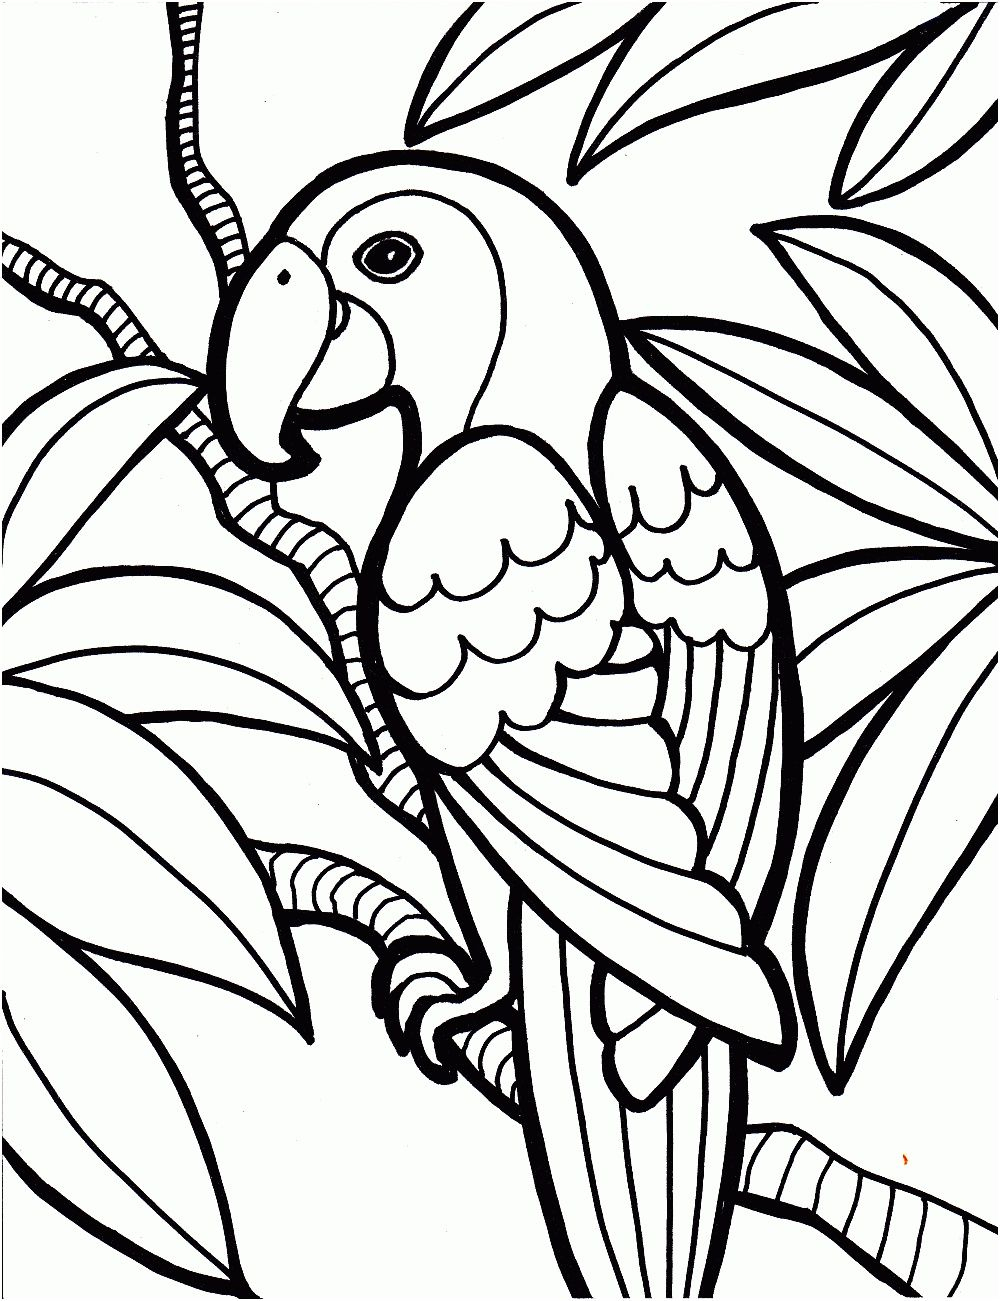 12 Cher Perroquet Coloriage Image | Coloriage, Image Coloriage serapportantà Perroquet Coloriage A Imprimer